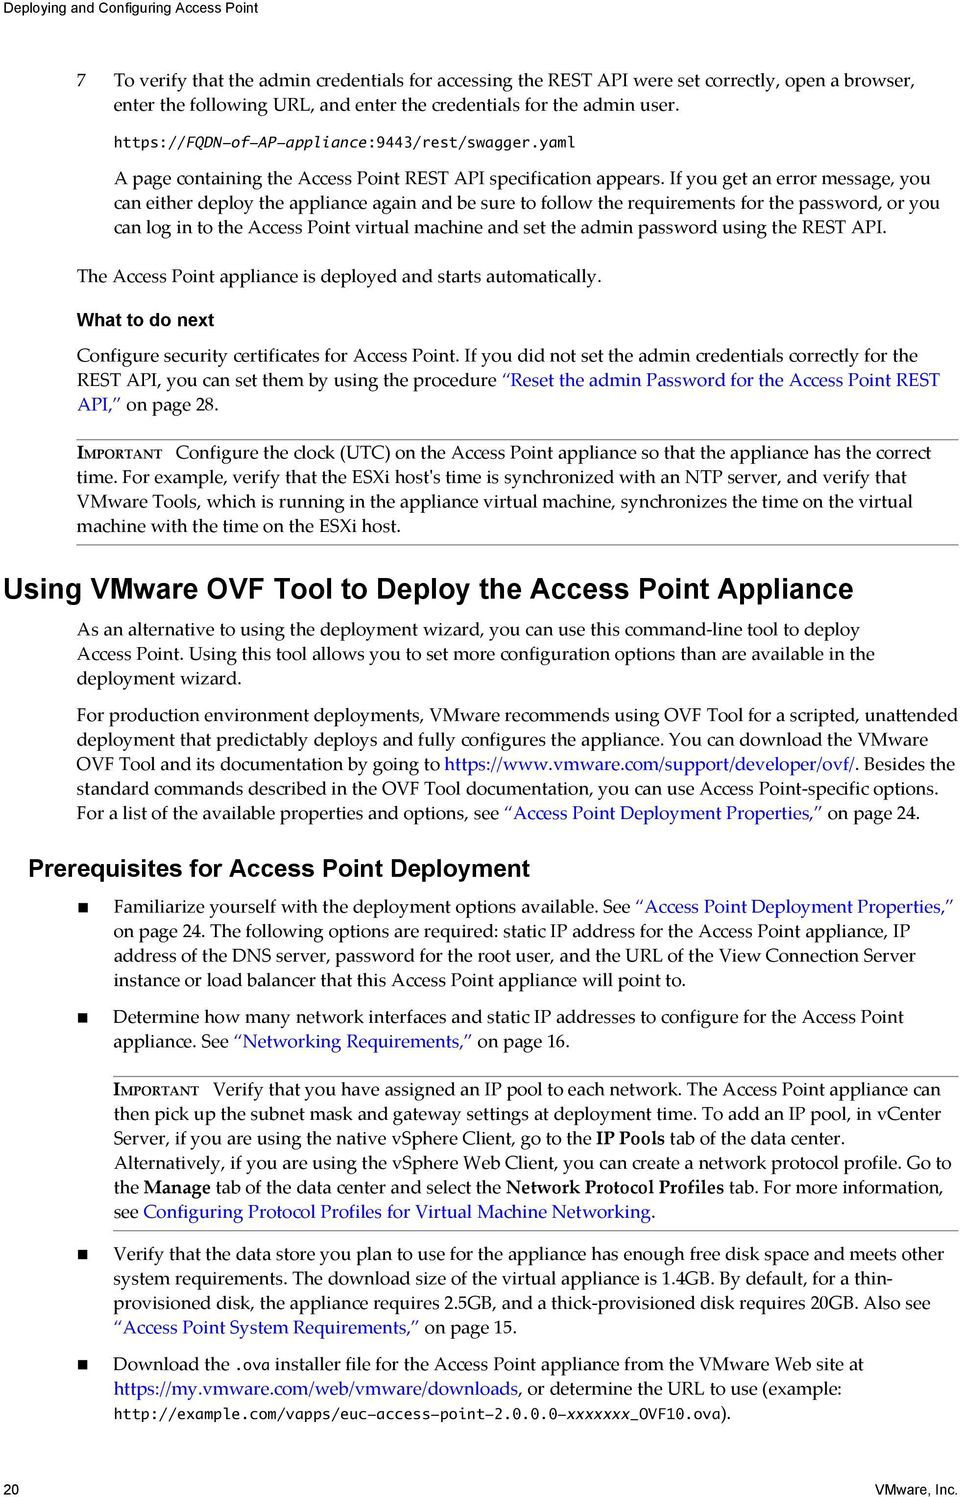 Deploying and Configuring Access Point - PDF